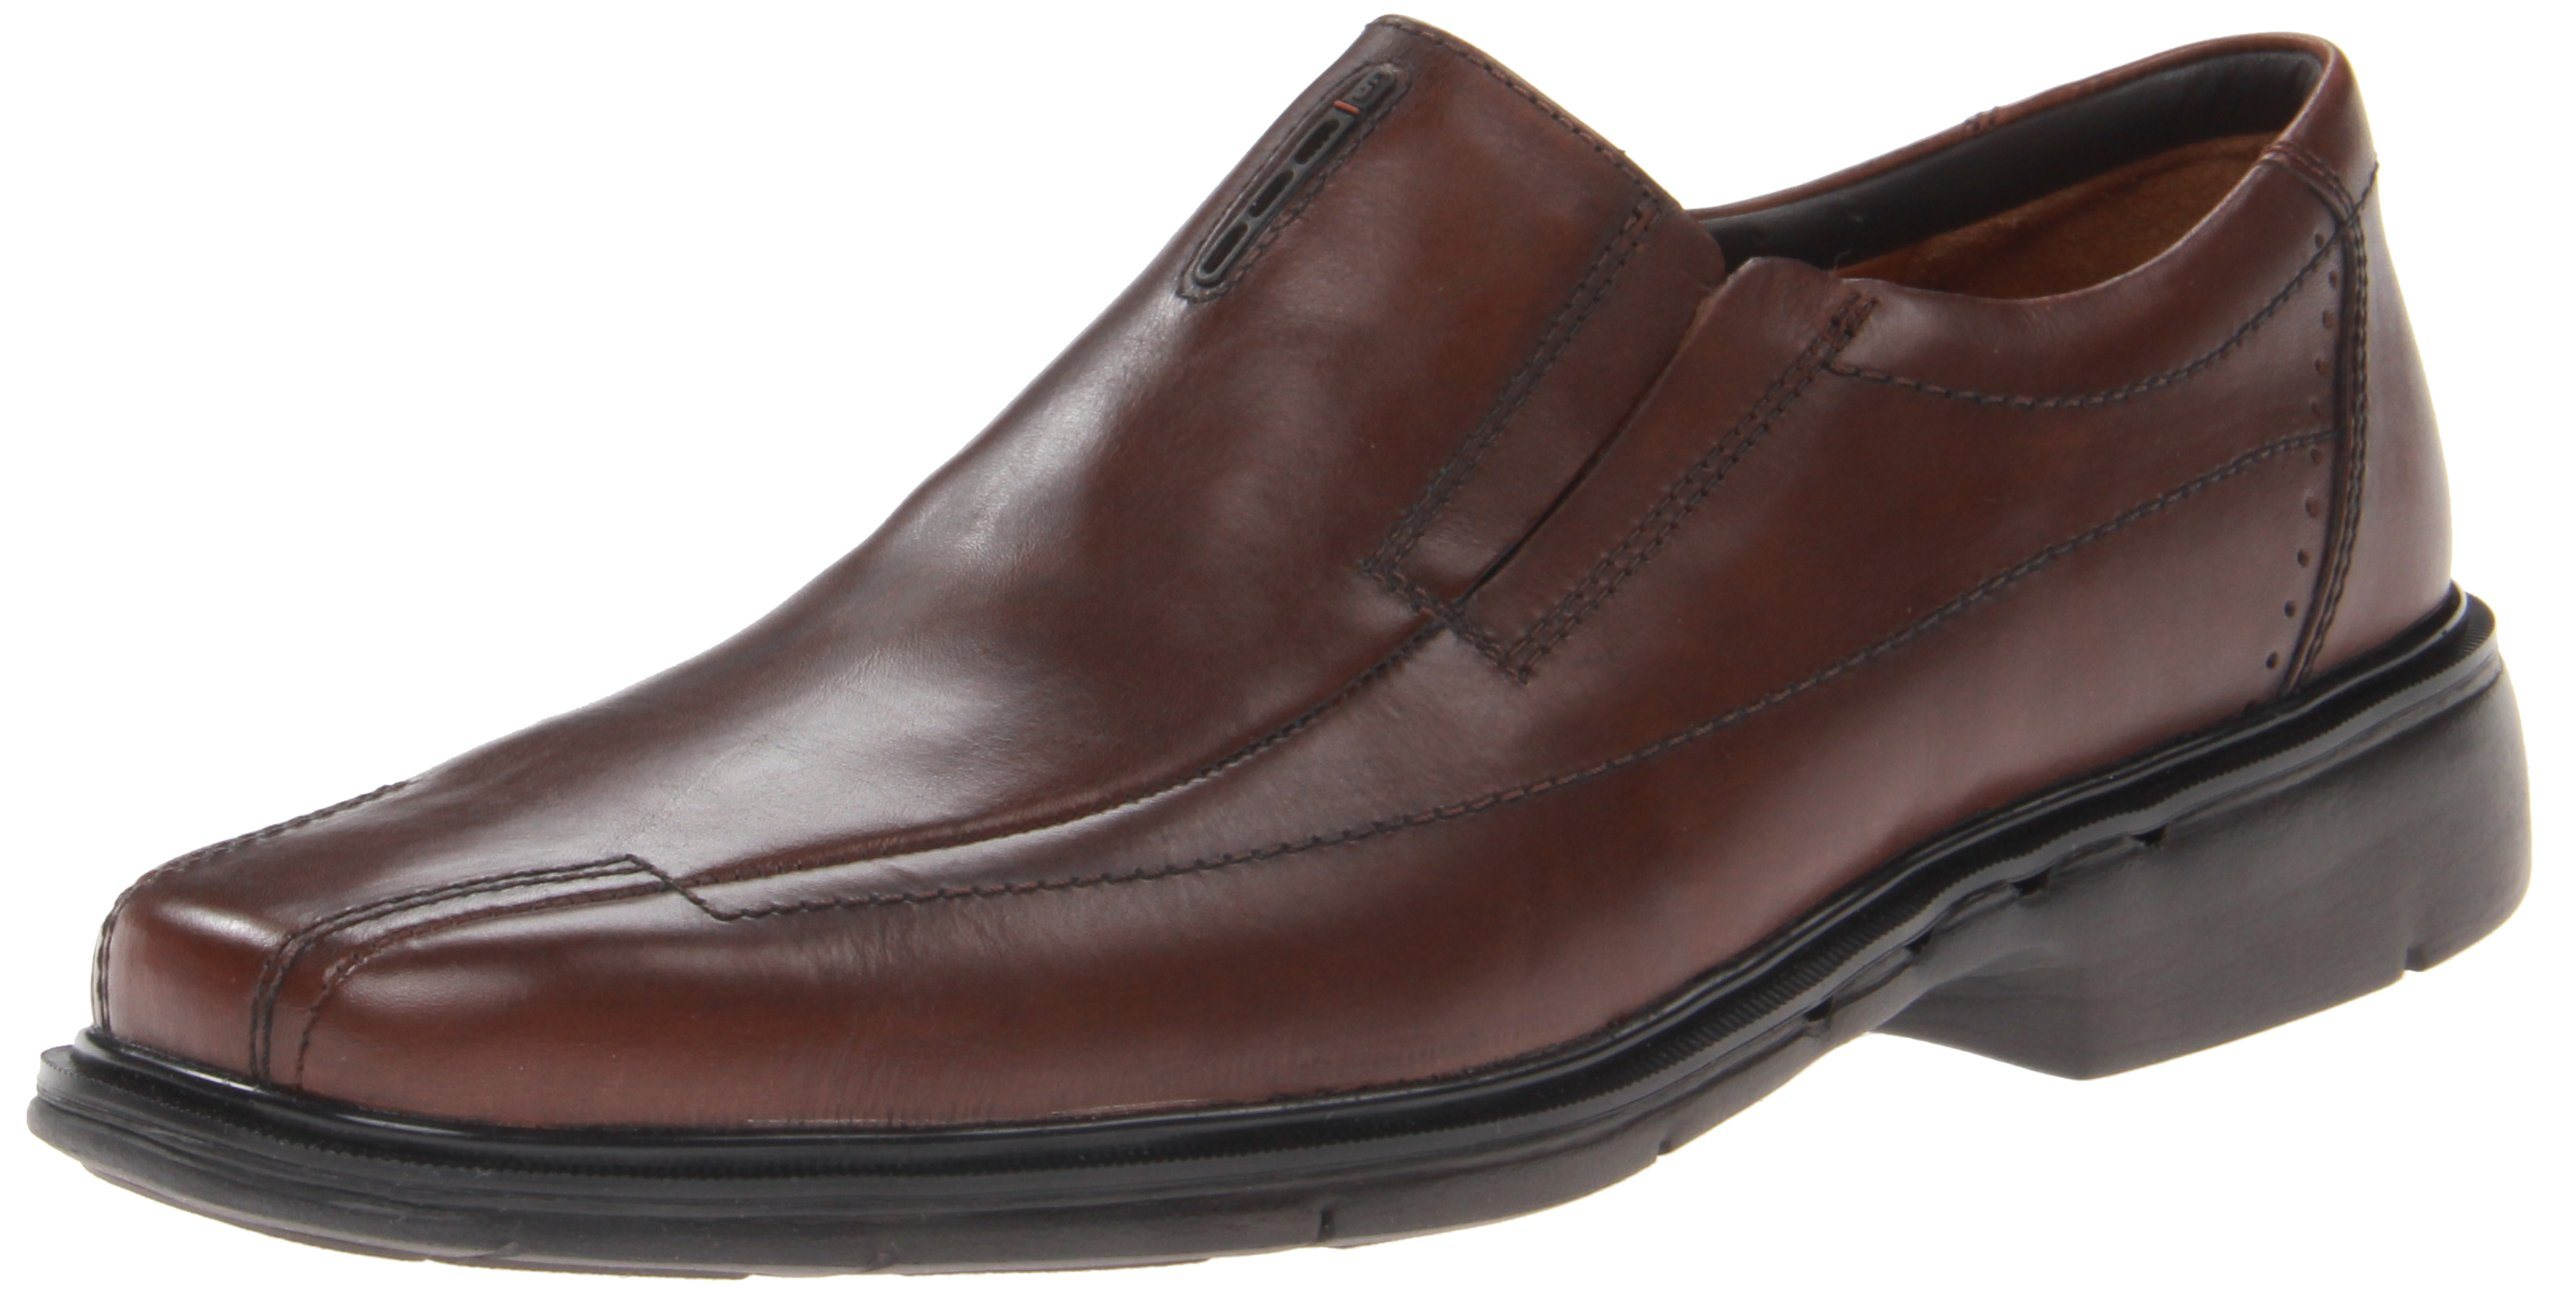 Clarks Unstructured Un.Sheridan Mens Slip On loafers Brown 9.5 by CLARKS